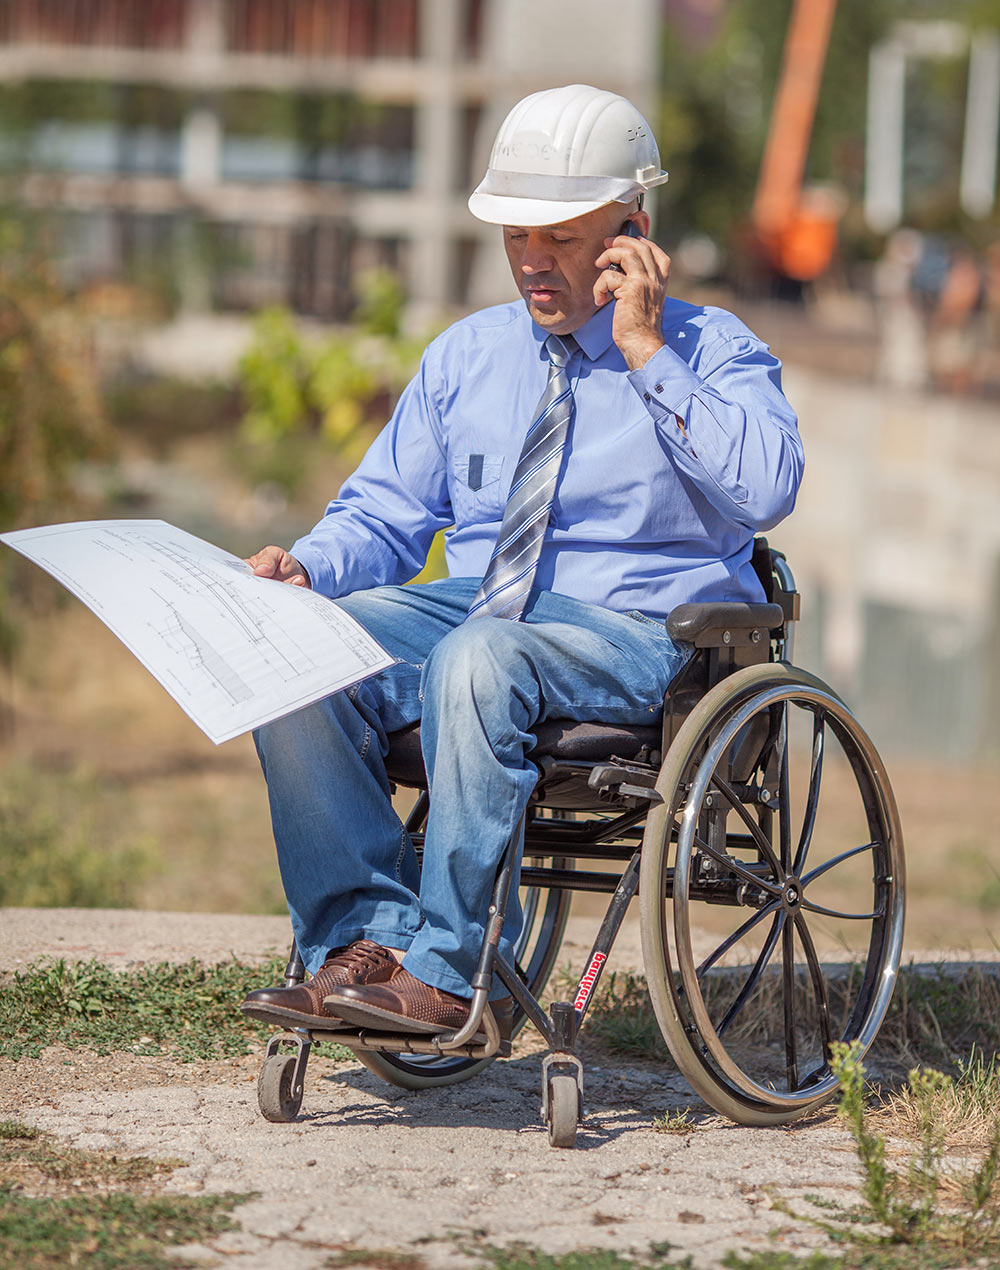 Male construction professional in a wheelchair, at a jobsite holding plans